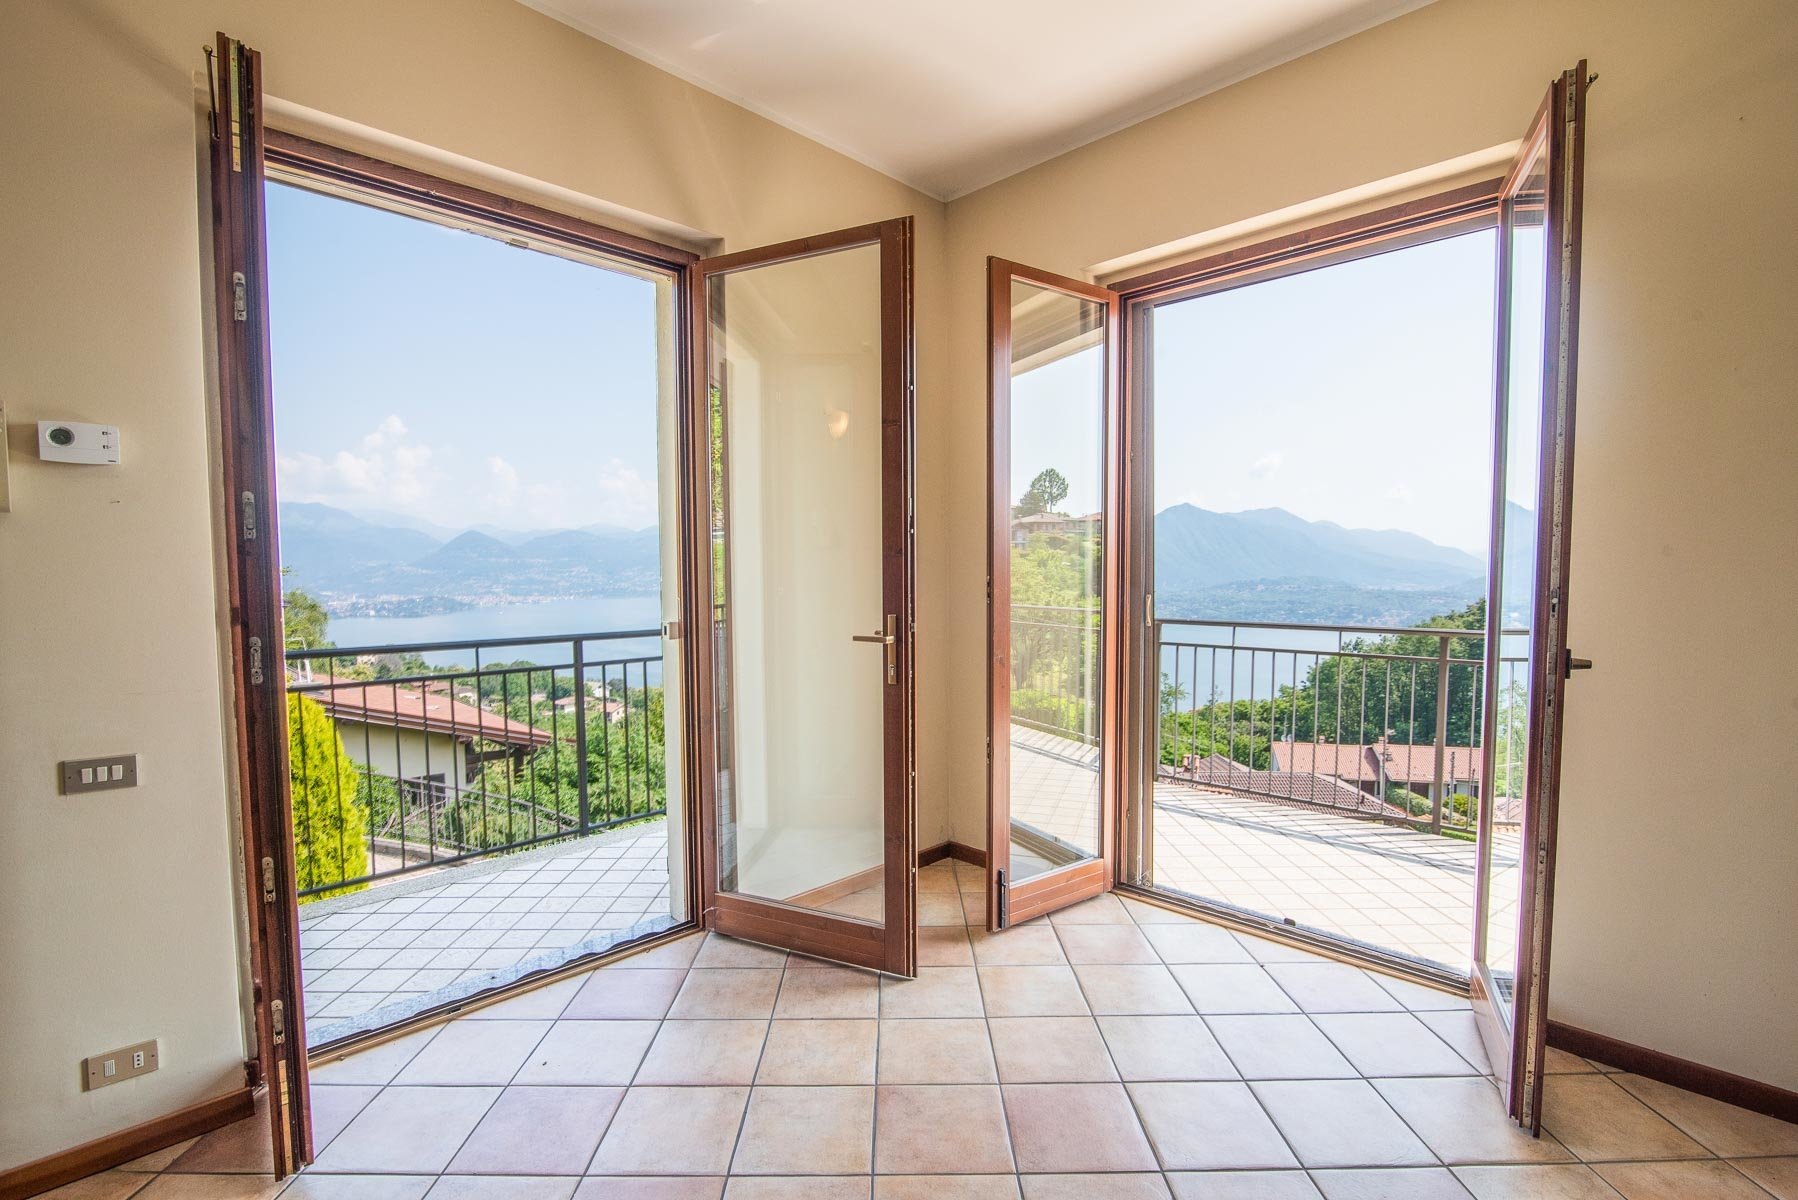 Apartment for sale on the hill of Stresa